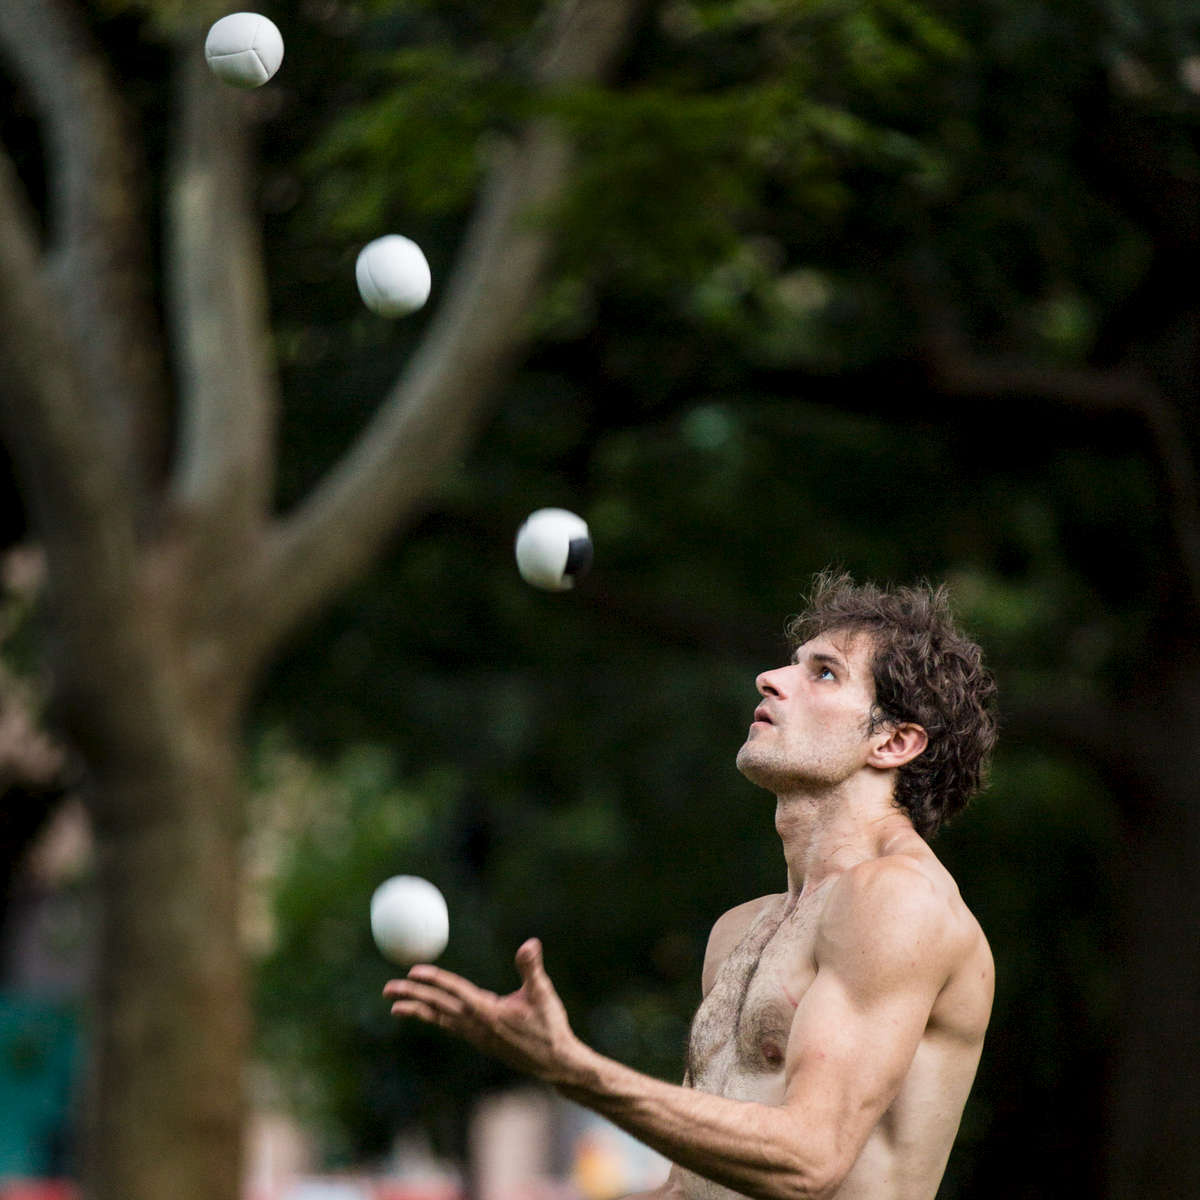 Noah Shipley juggles at Washington Square Park this summer.